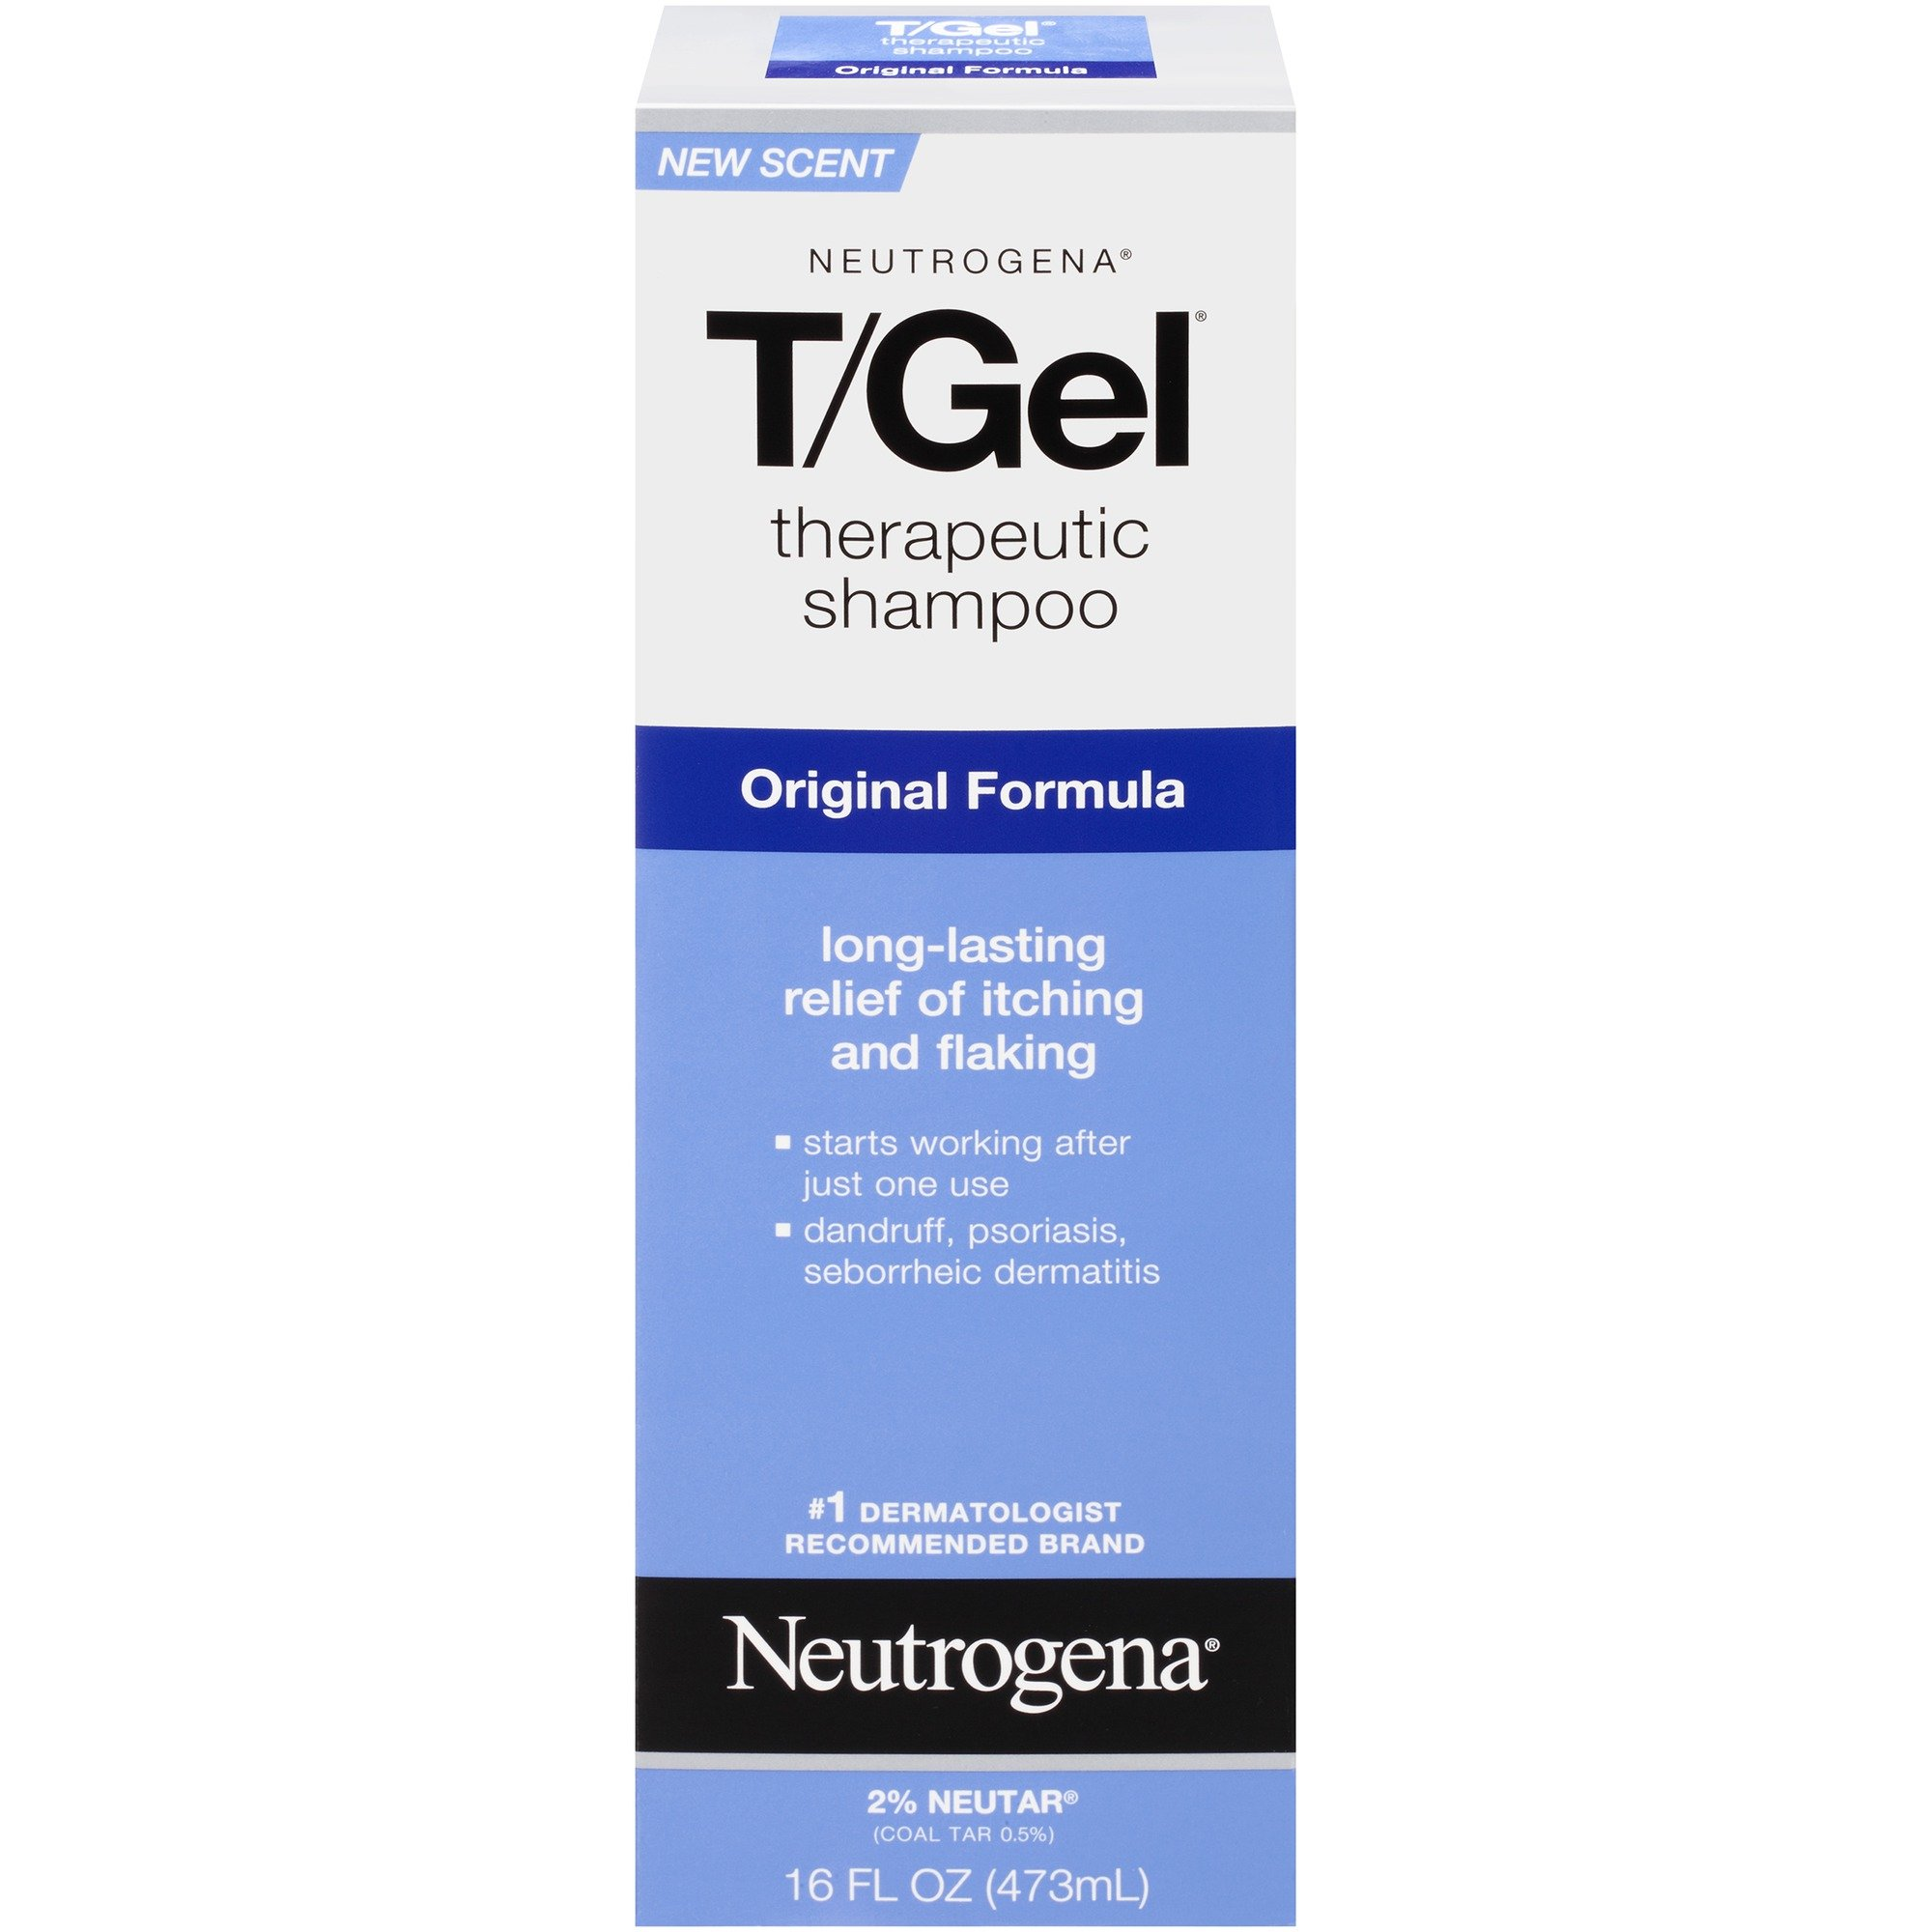 Tar shampoo dandruff - reviews 11